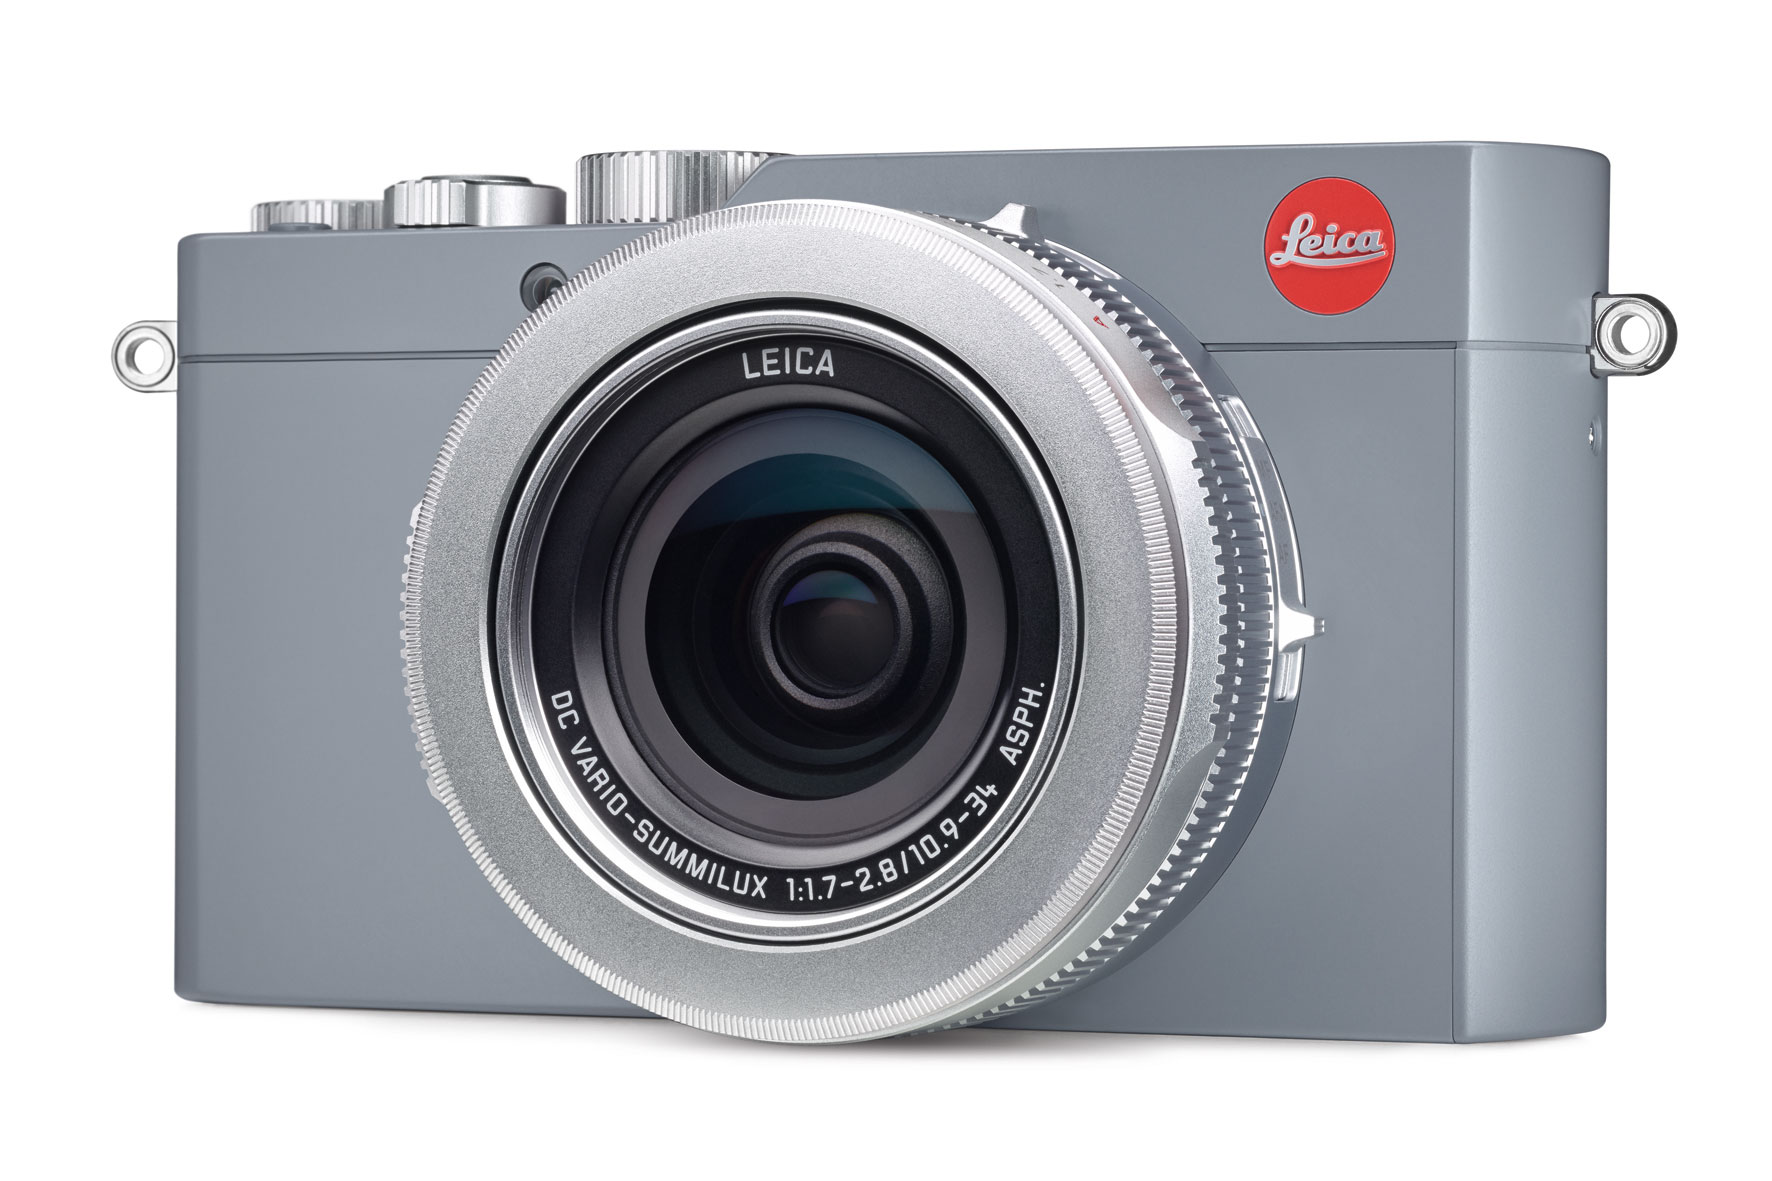 Leica D-Lux 'Solid Gray' compact camera